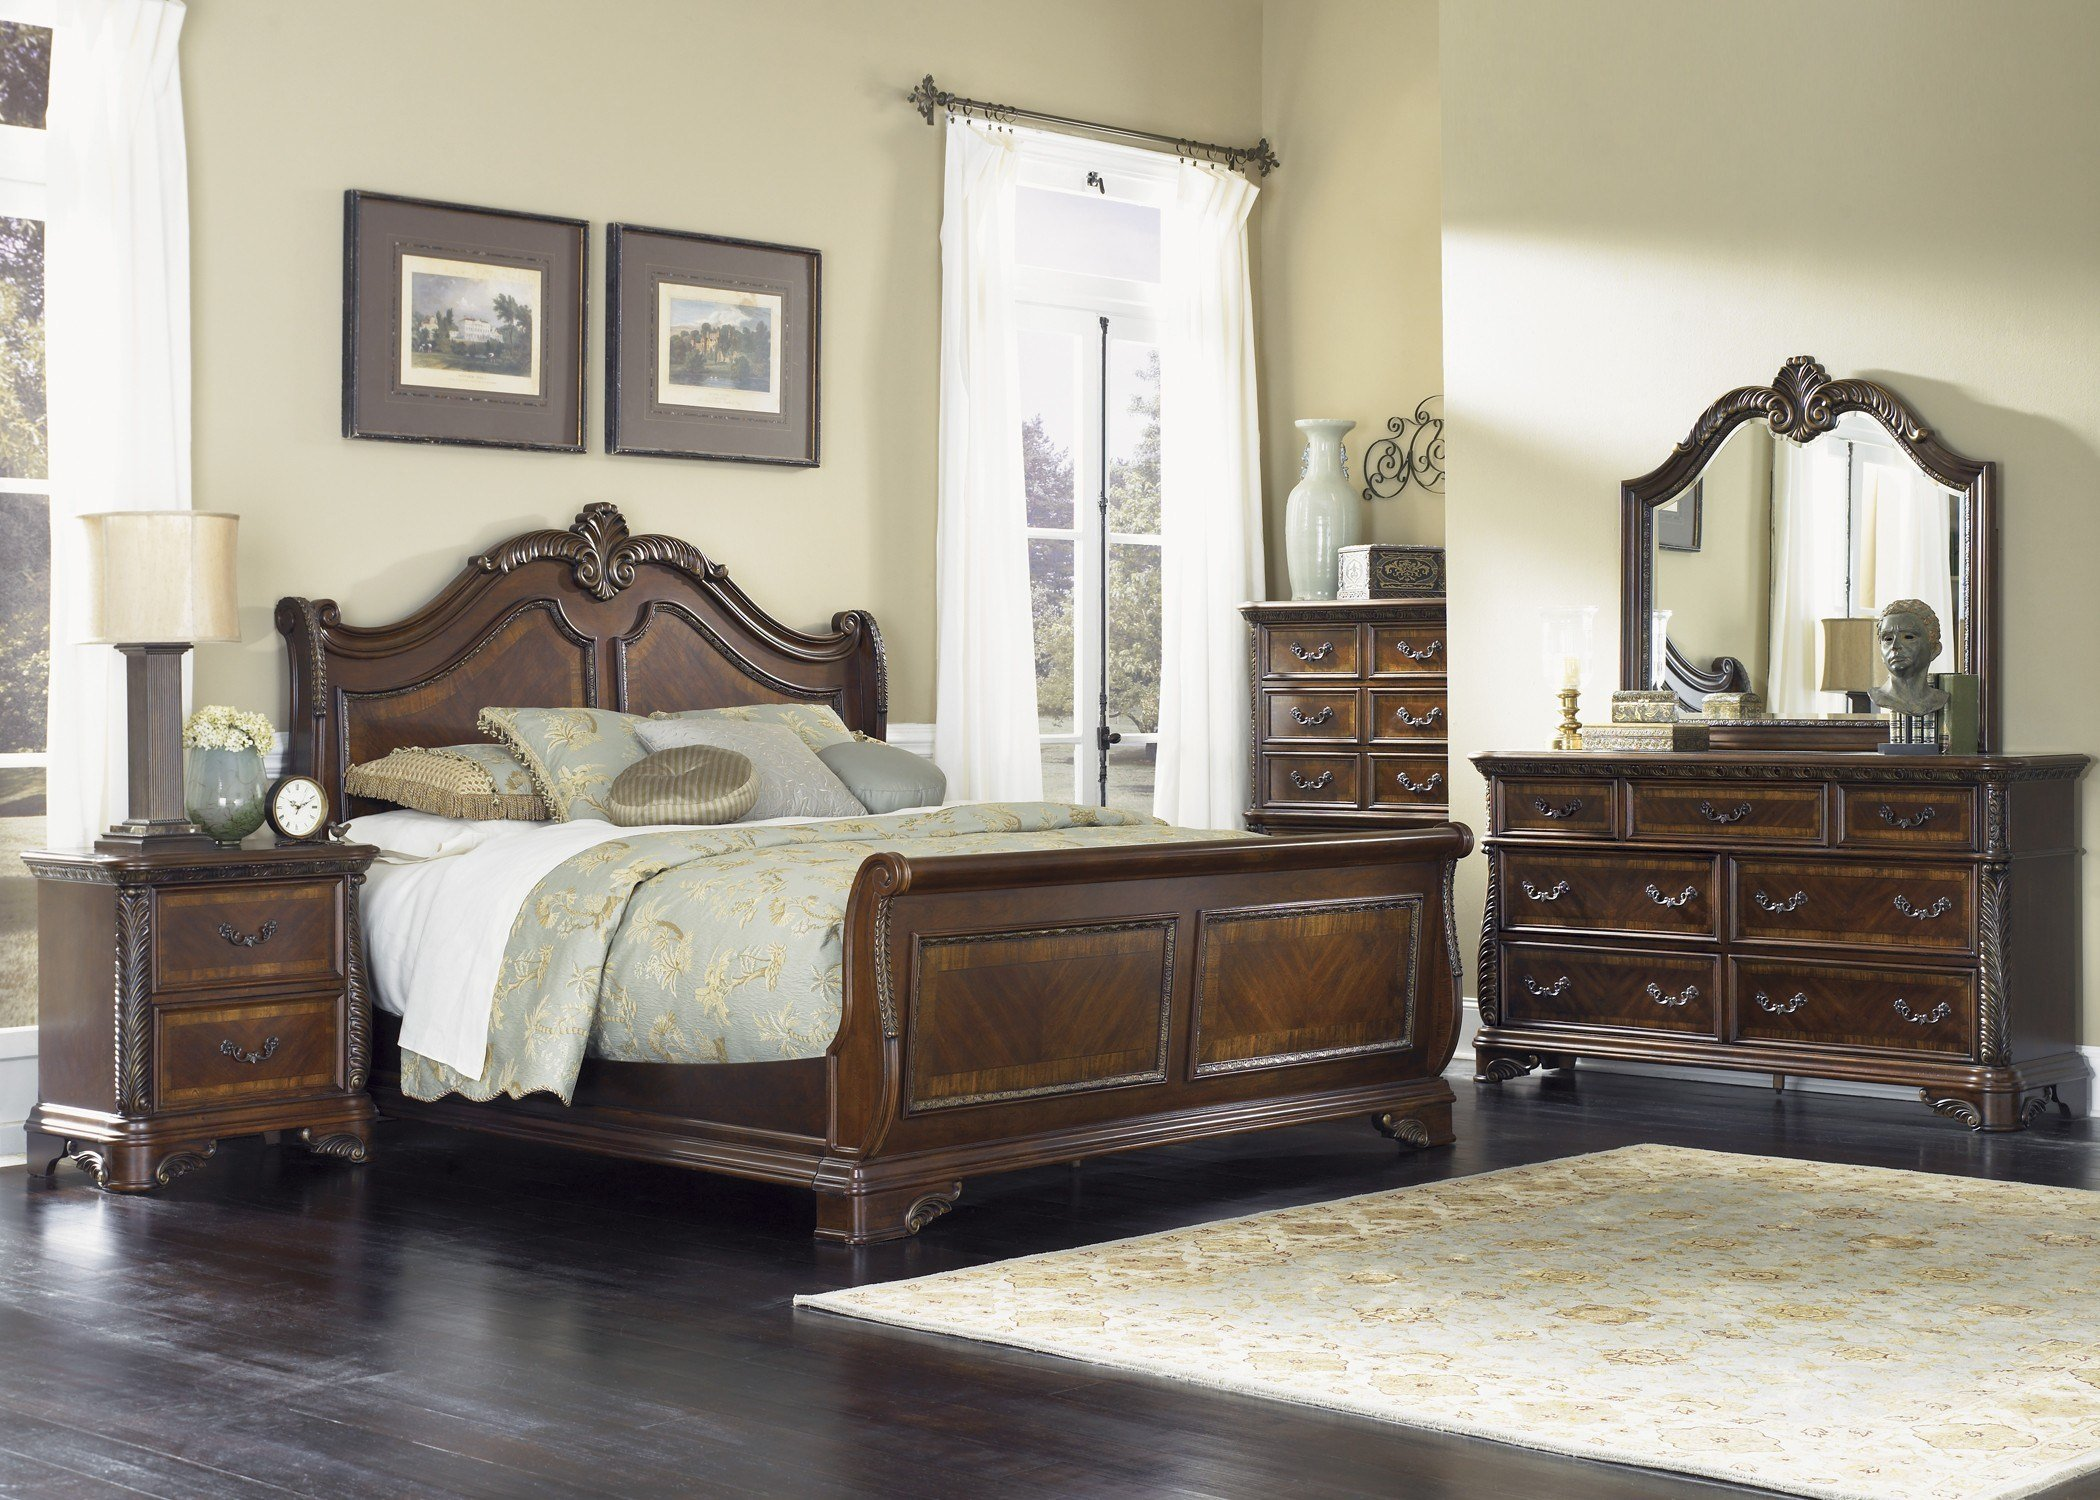 Best Highland Court Sleigh Bedroom Set From Liberty 620 Br Qsl With Pictures